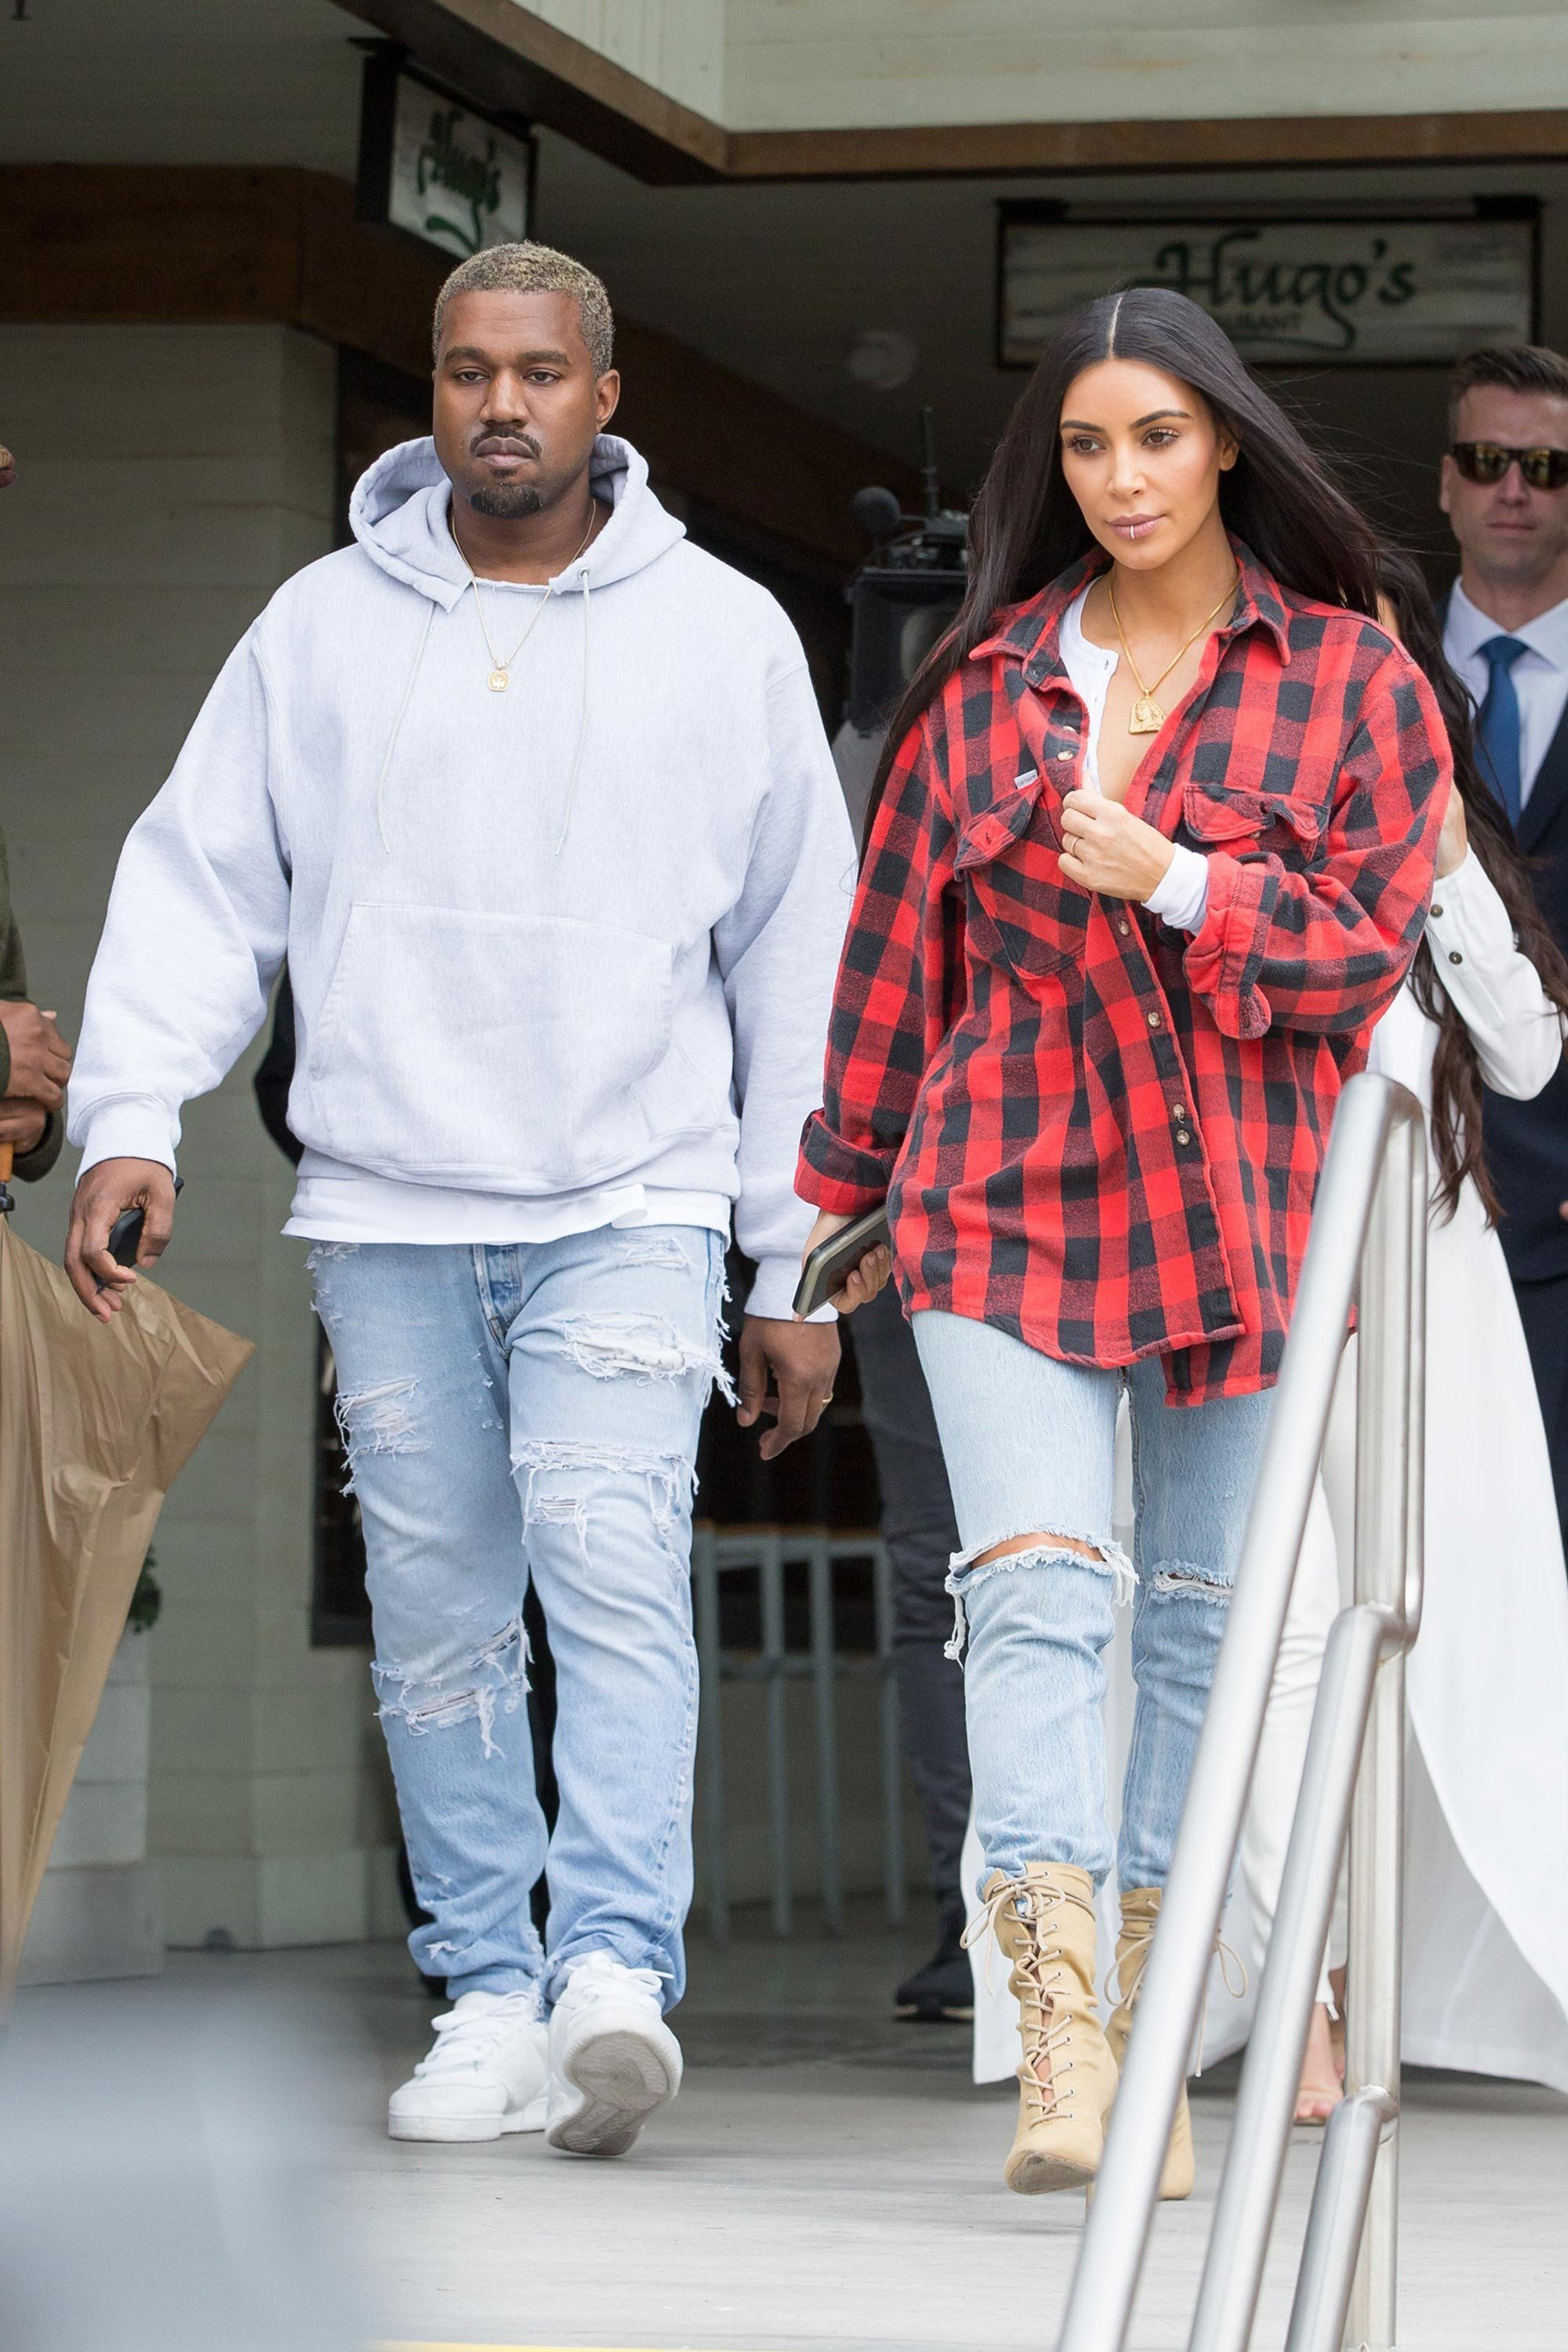 Kim Kardashian West And Kanye West Are Clearly Closer Than Ever Judging By Their Style Kanye West Style Kim Kardashian Kanye West Kim Kardashian Style